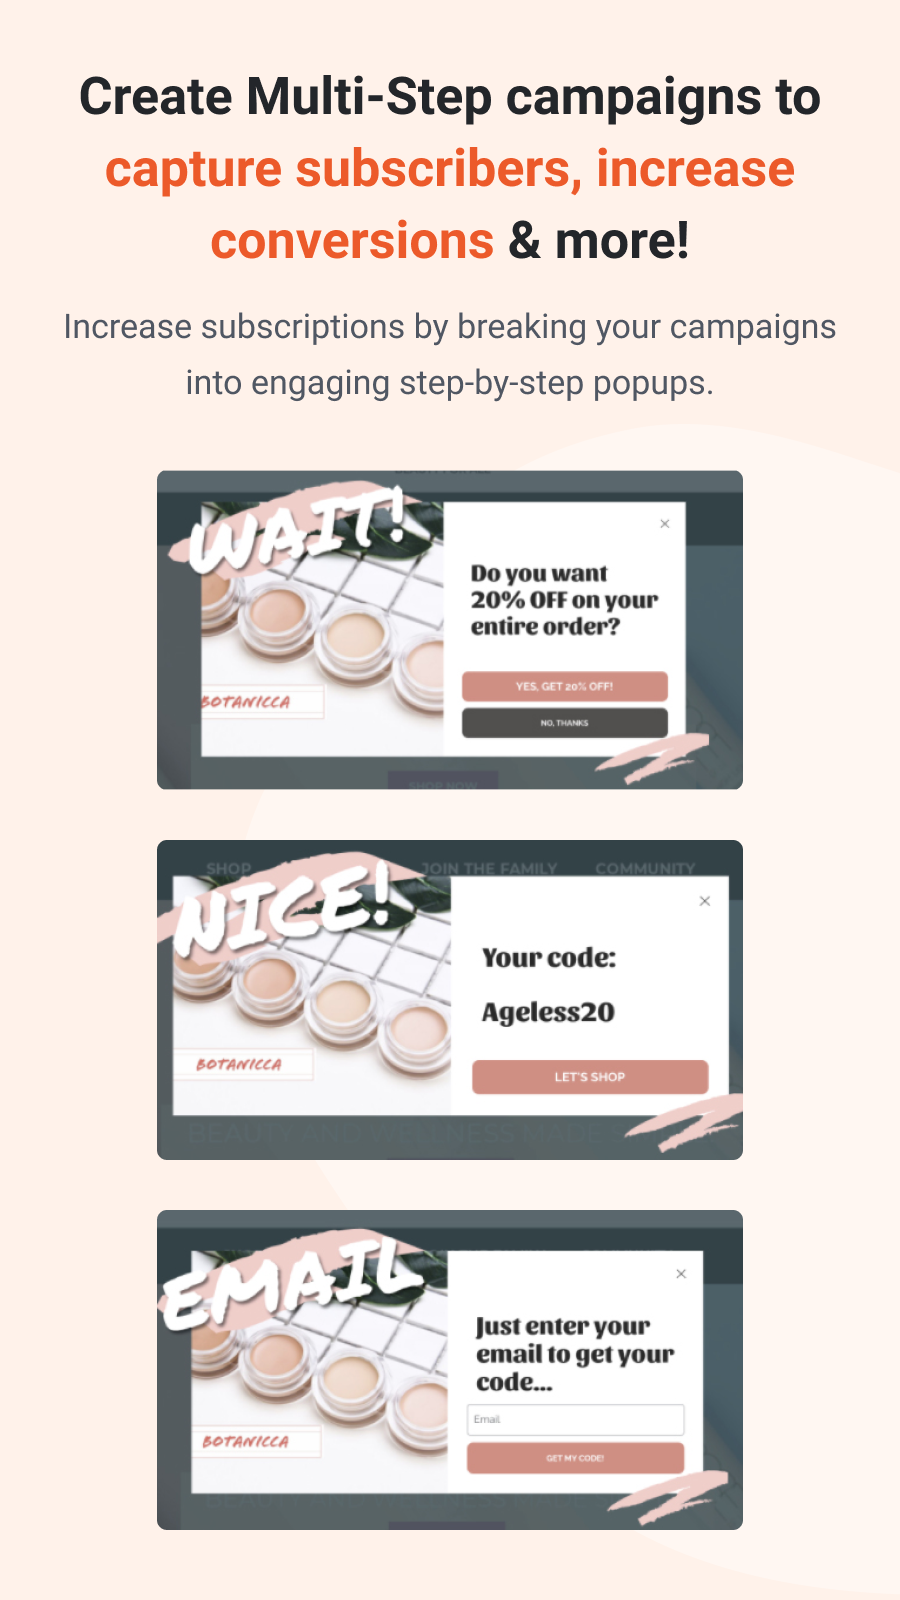 Grow subscriptions with multi-step popup campaigns.